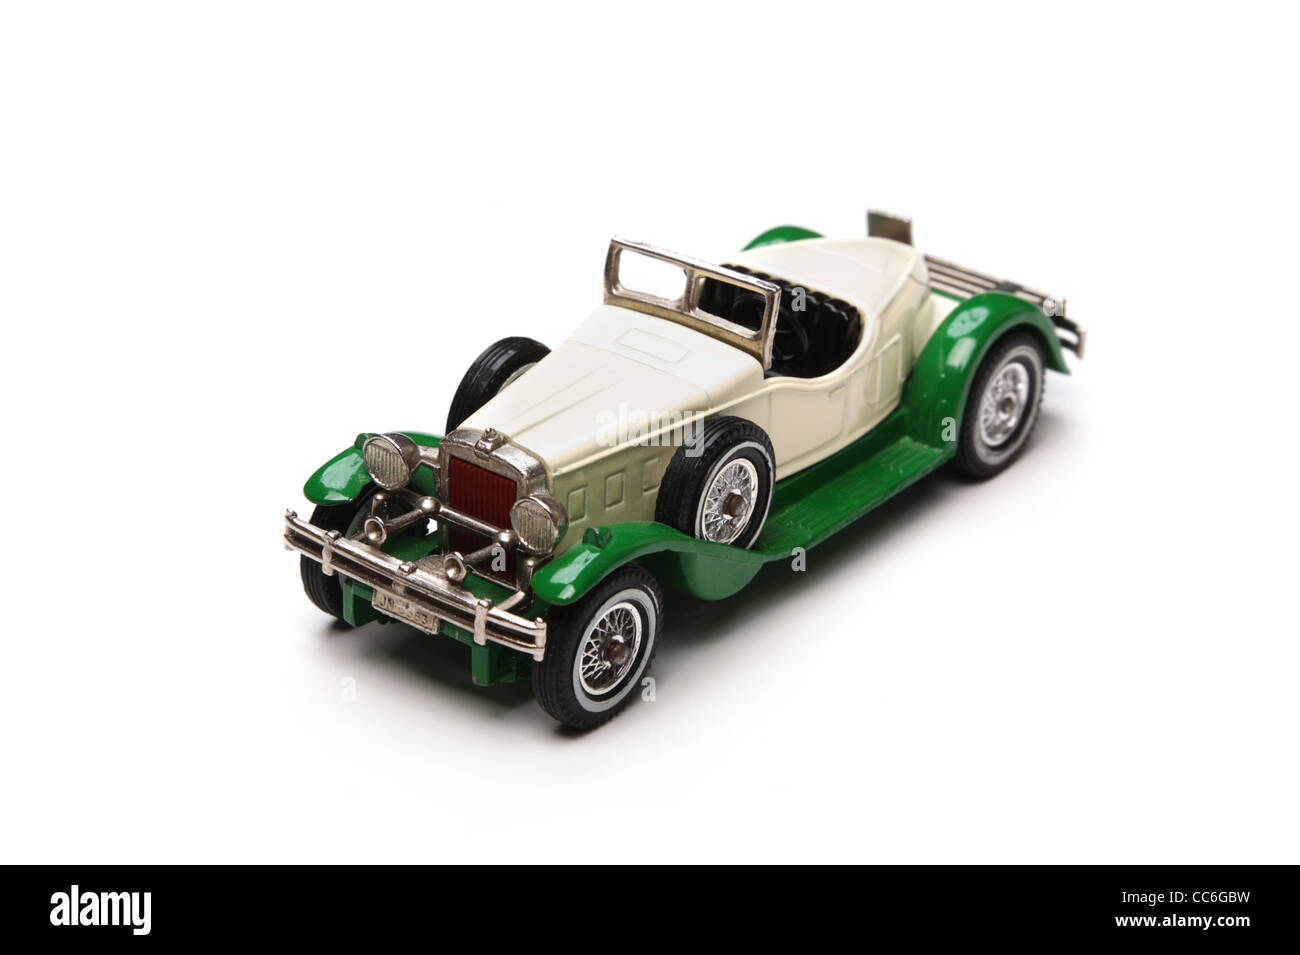 Old toy car close-up isolated on a white background. Shallow DOF. - Stock Image